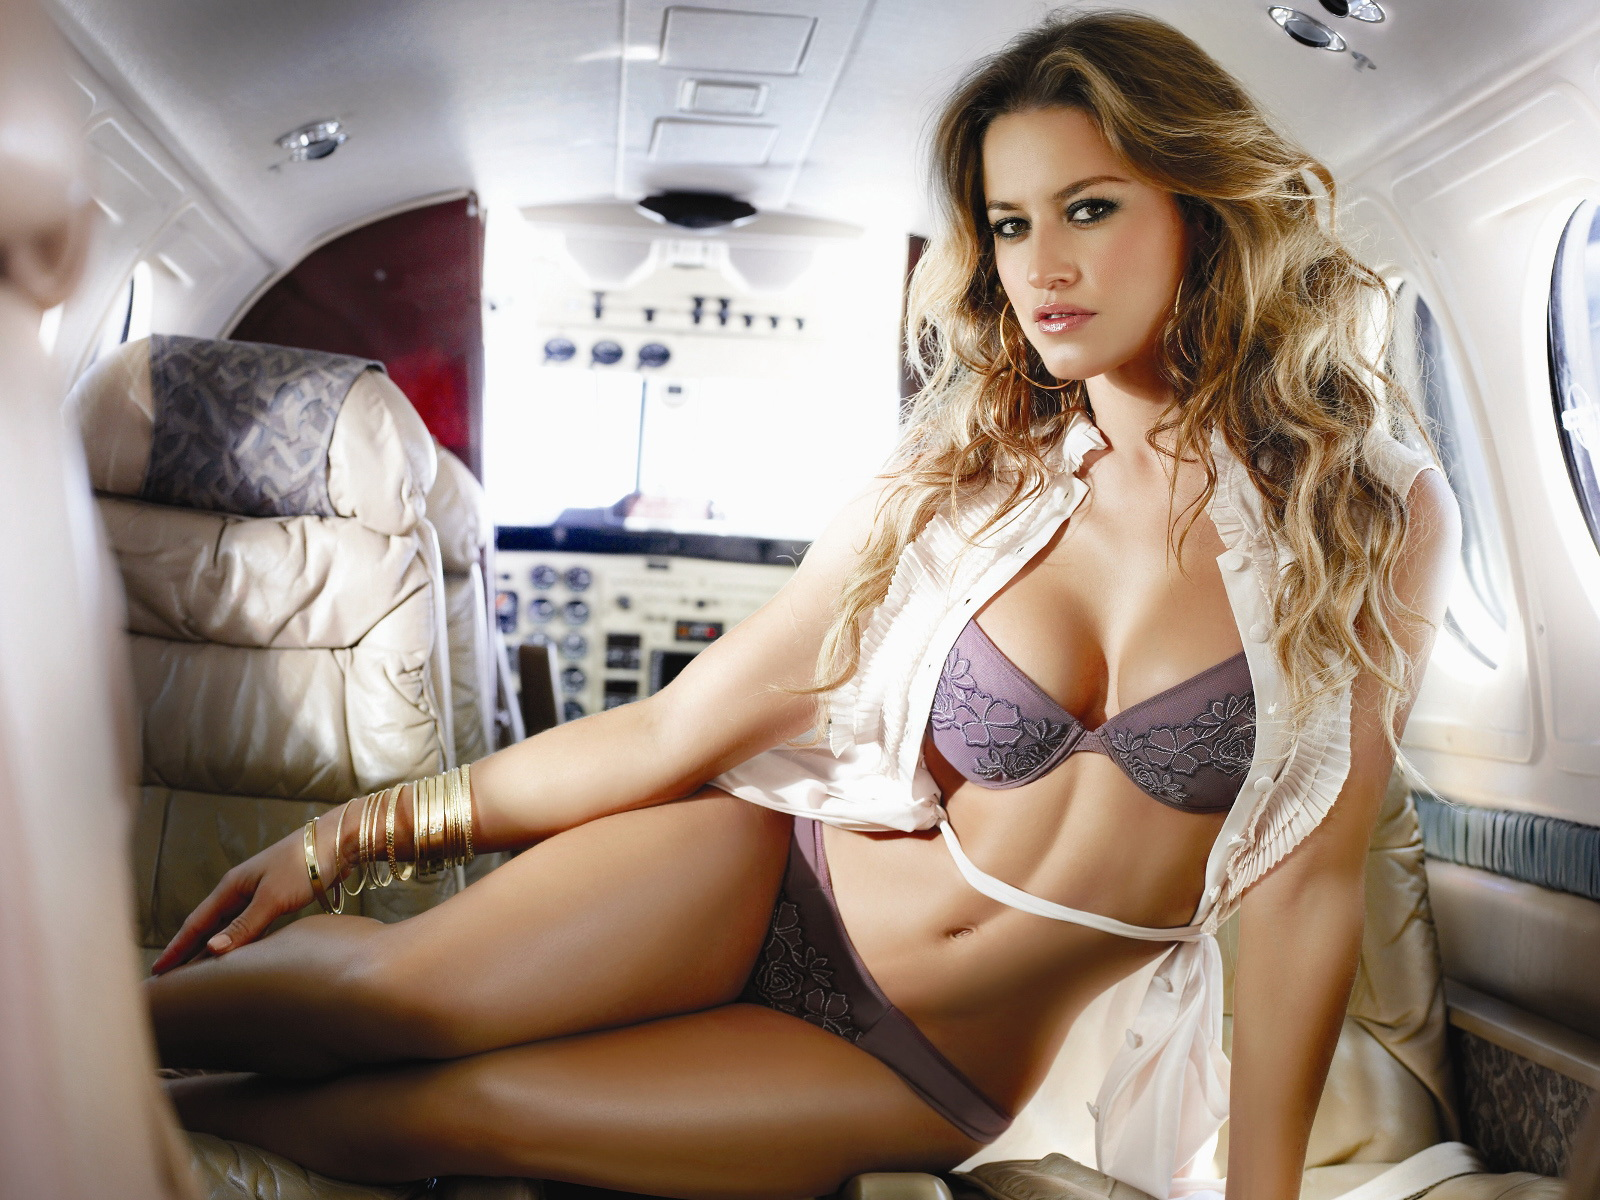 Curly-blonde-girl-in-lingerie-in-a-private-jet-plane-with-white-vest-wallpaper_2698